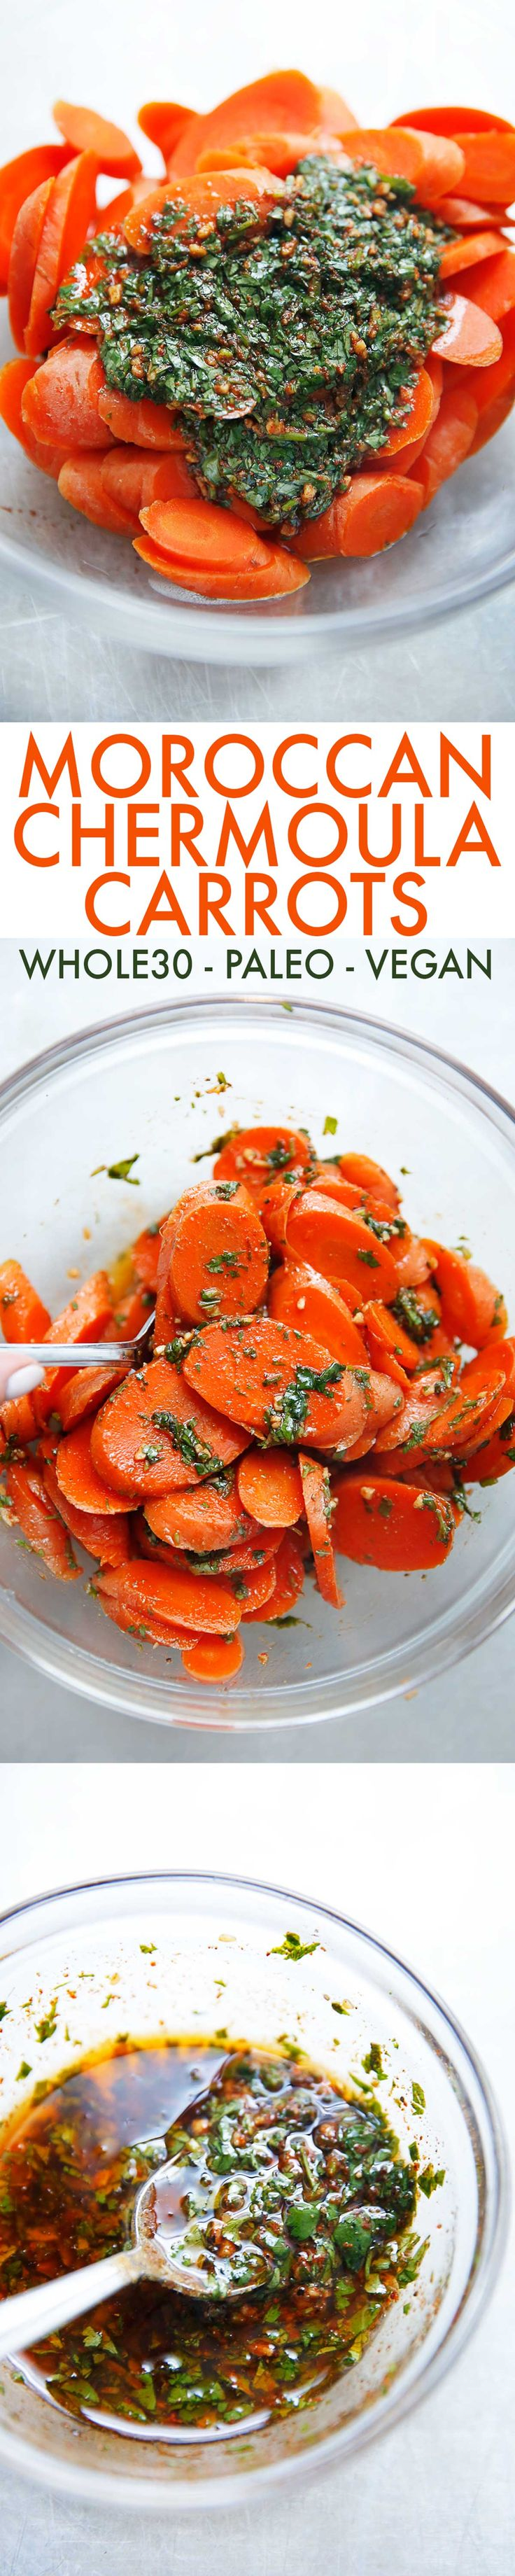 These Moroccan Chermoula Carrots are made with perfectly cooked tender carrots that are tossed in a flavorful and easy chermoula sauce! They are a delicious and easy carrot side dish recipe to accompany any meal